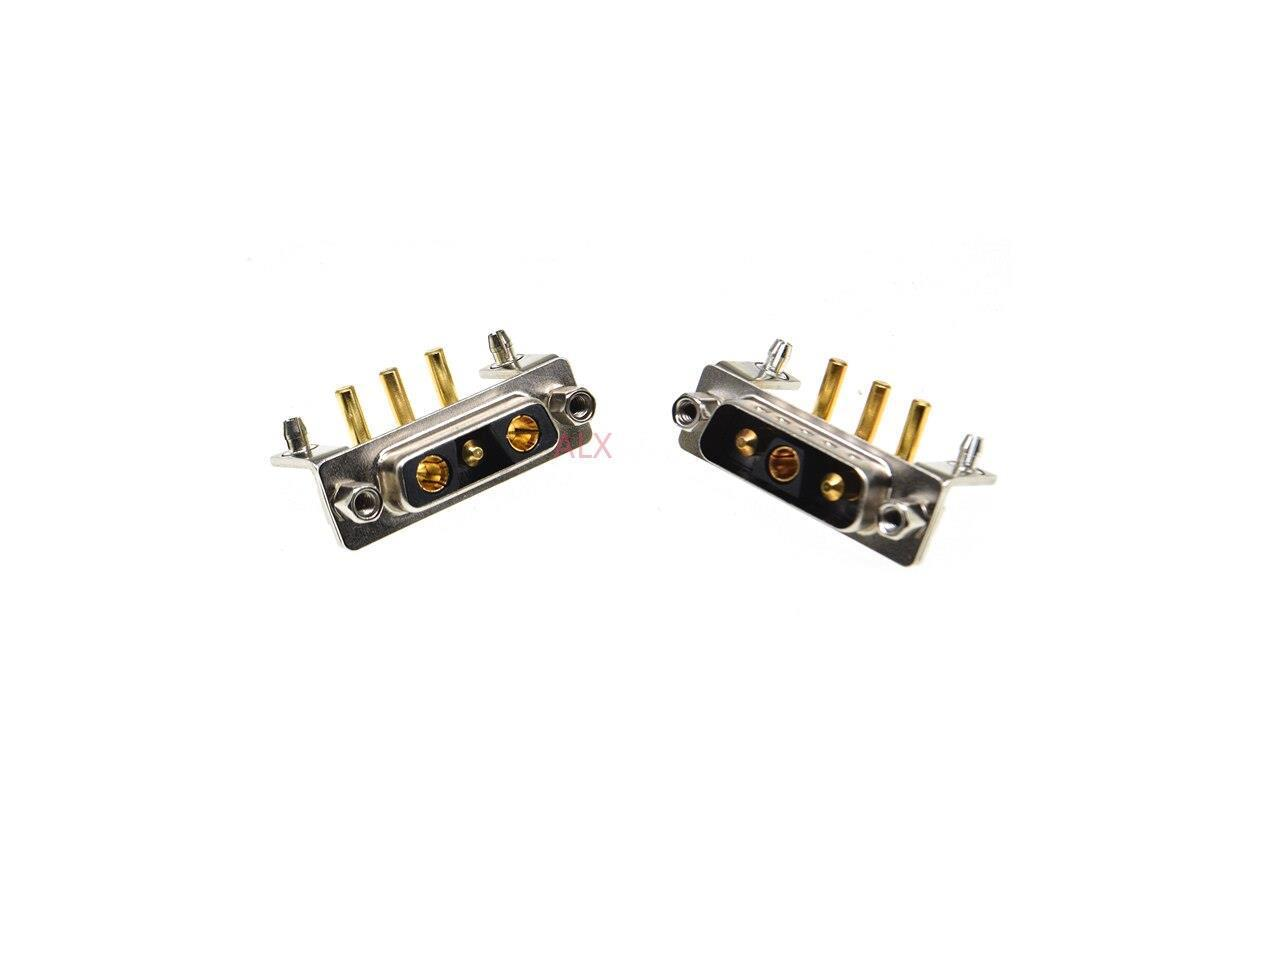 1pcs 3v3 30a Male Female High Current Connector Right